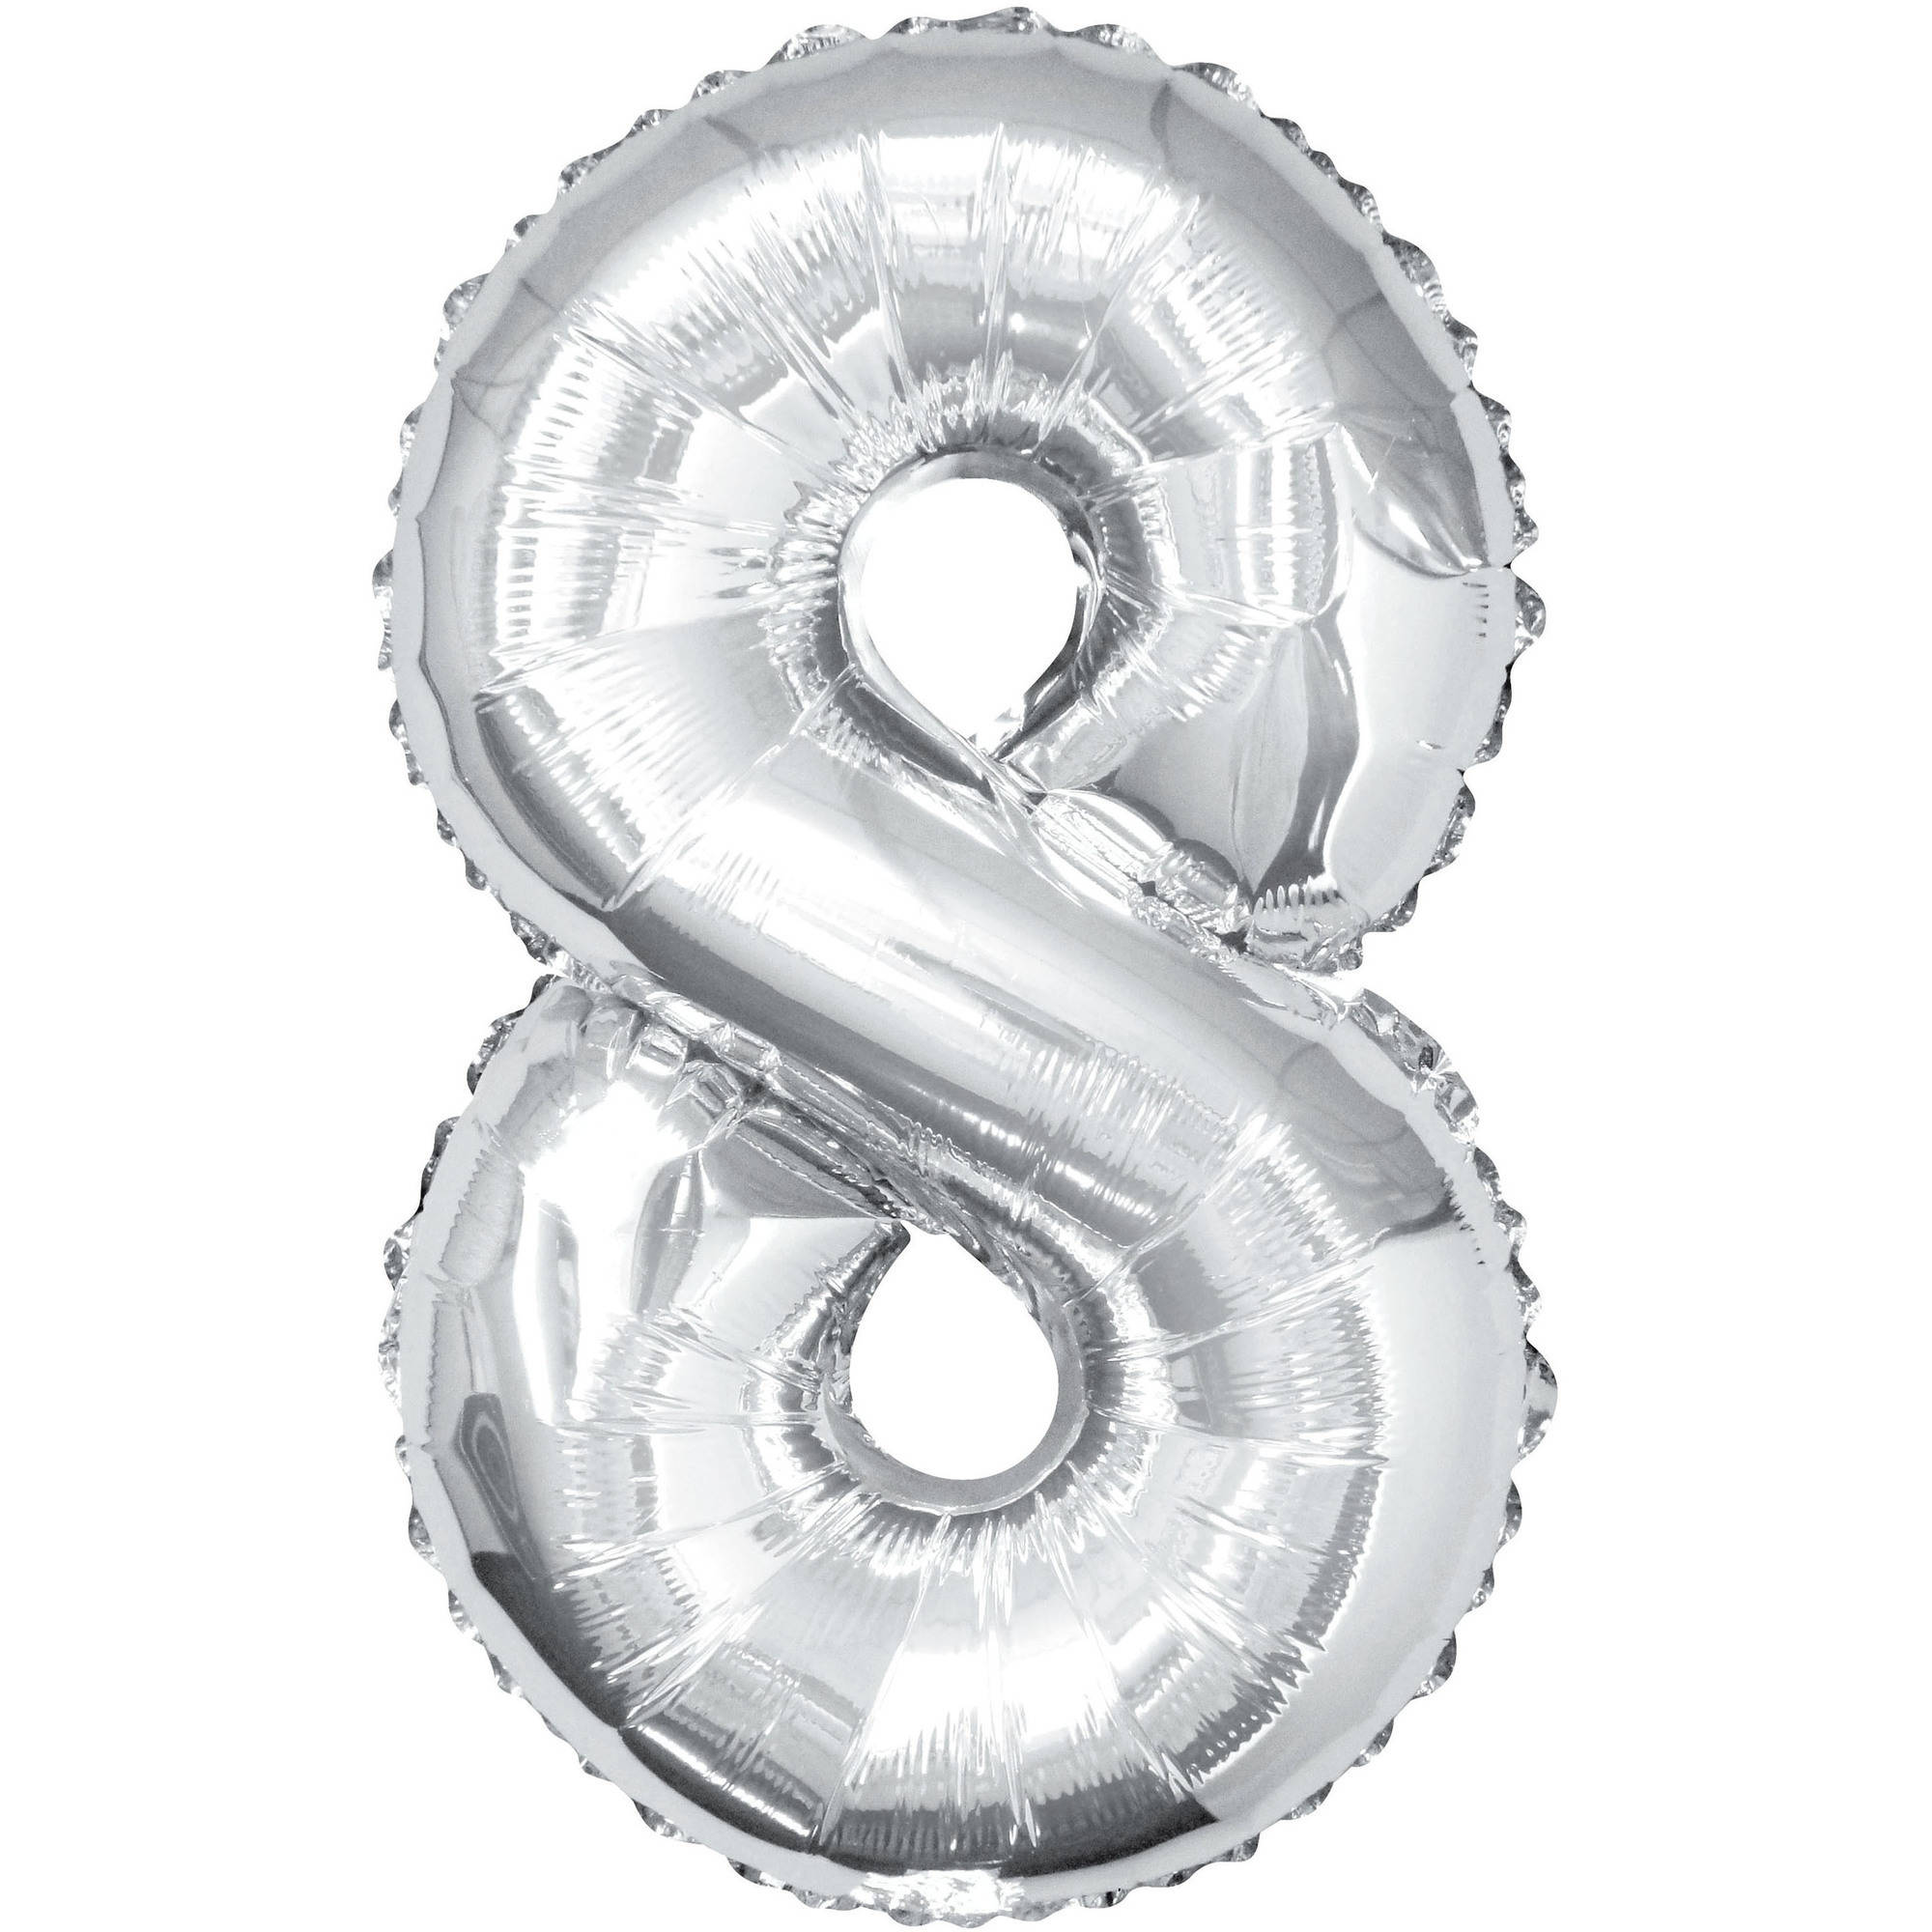 Foil Big Number Balloon, 8, 34 in, Silver, 1ct